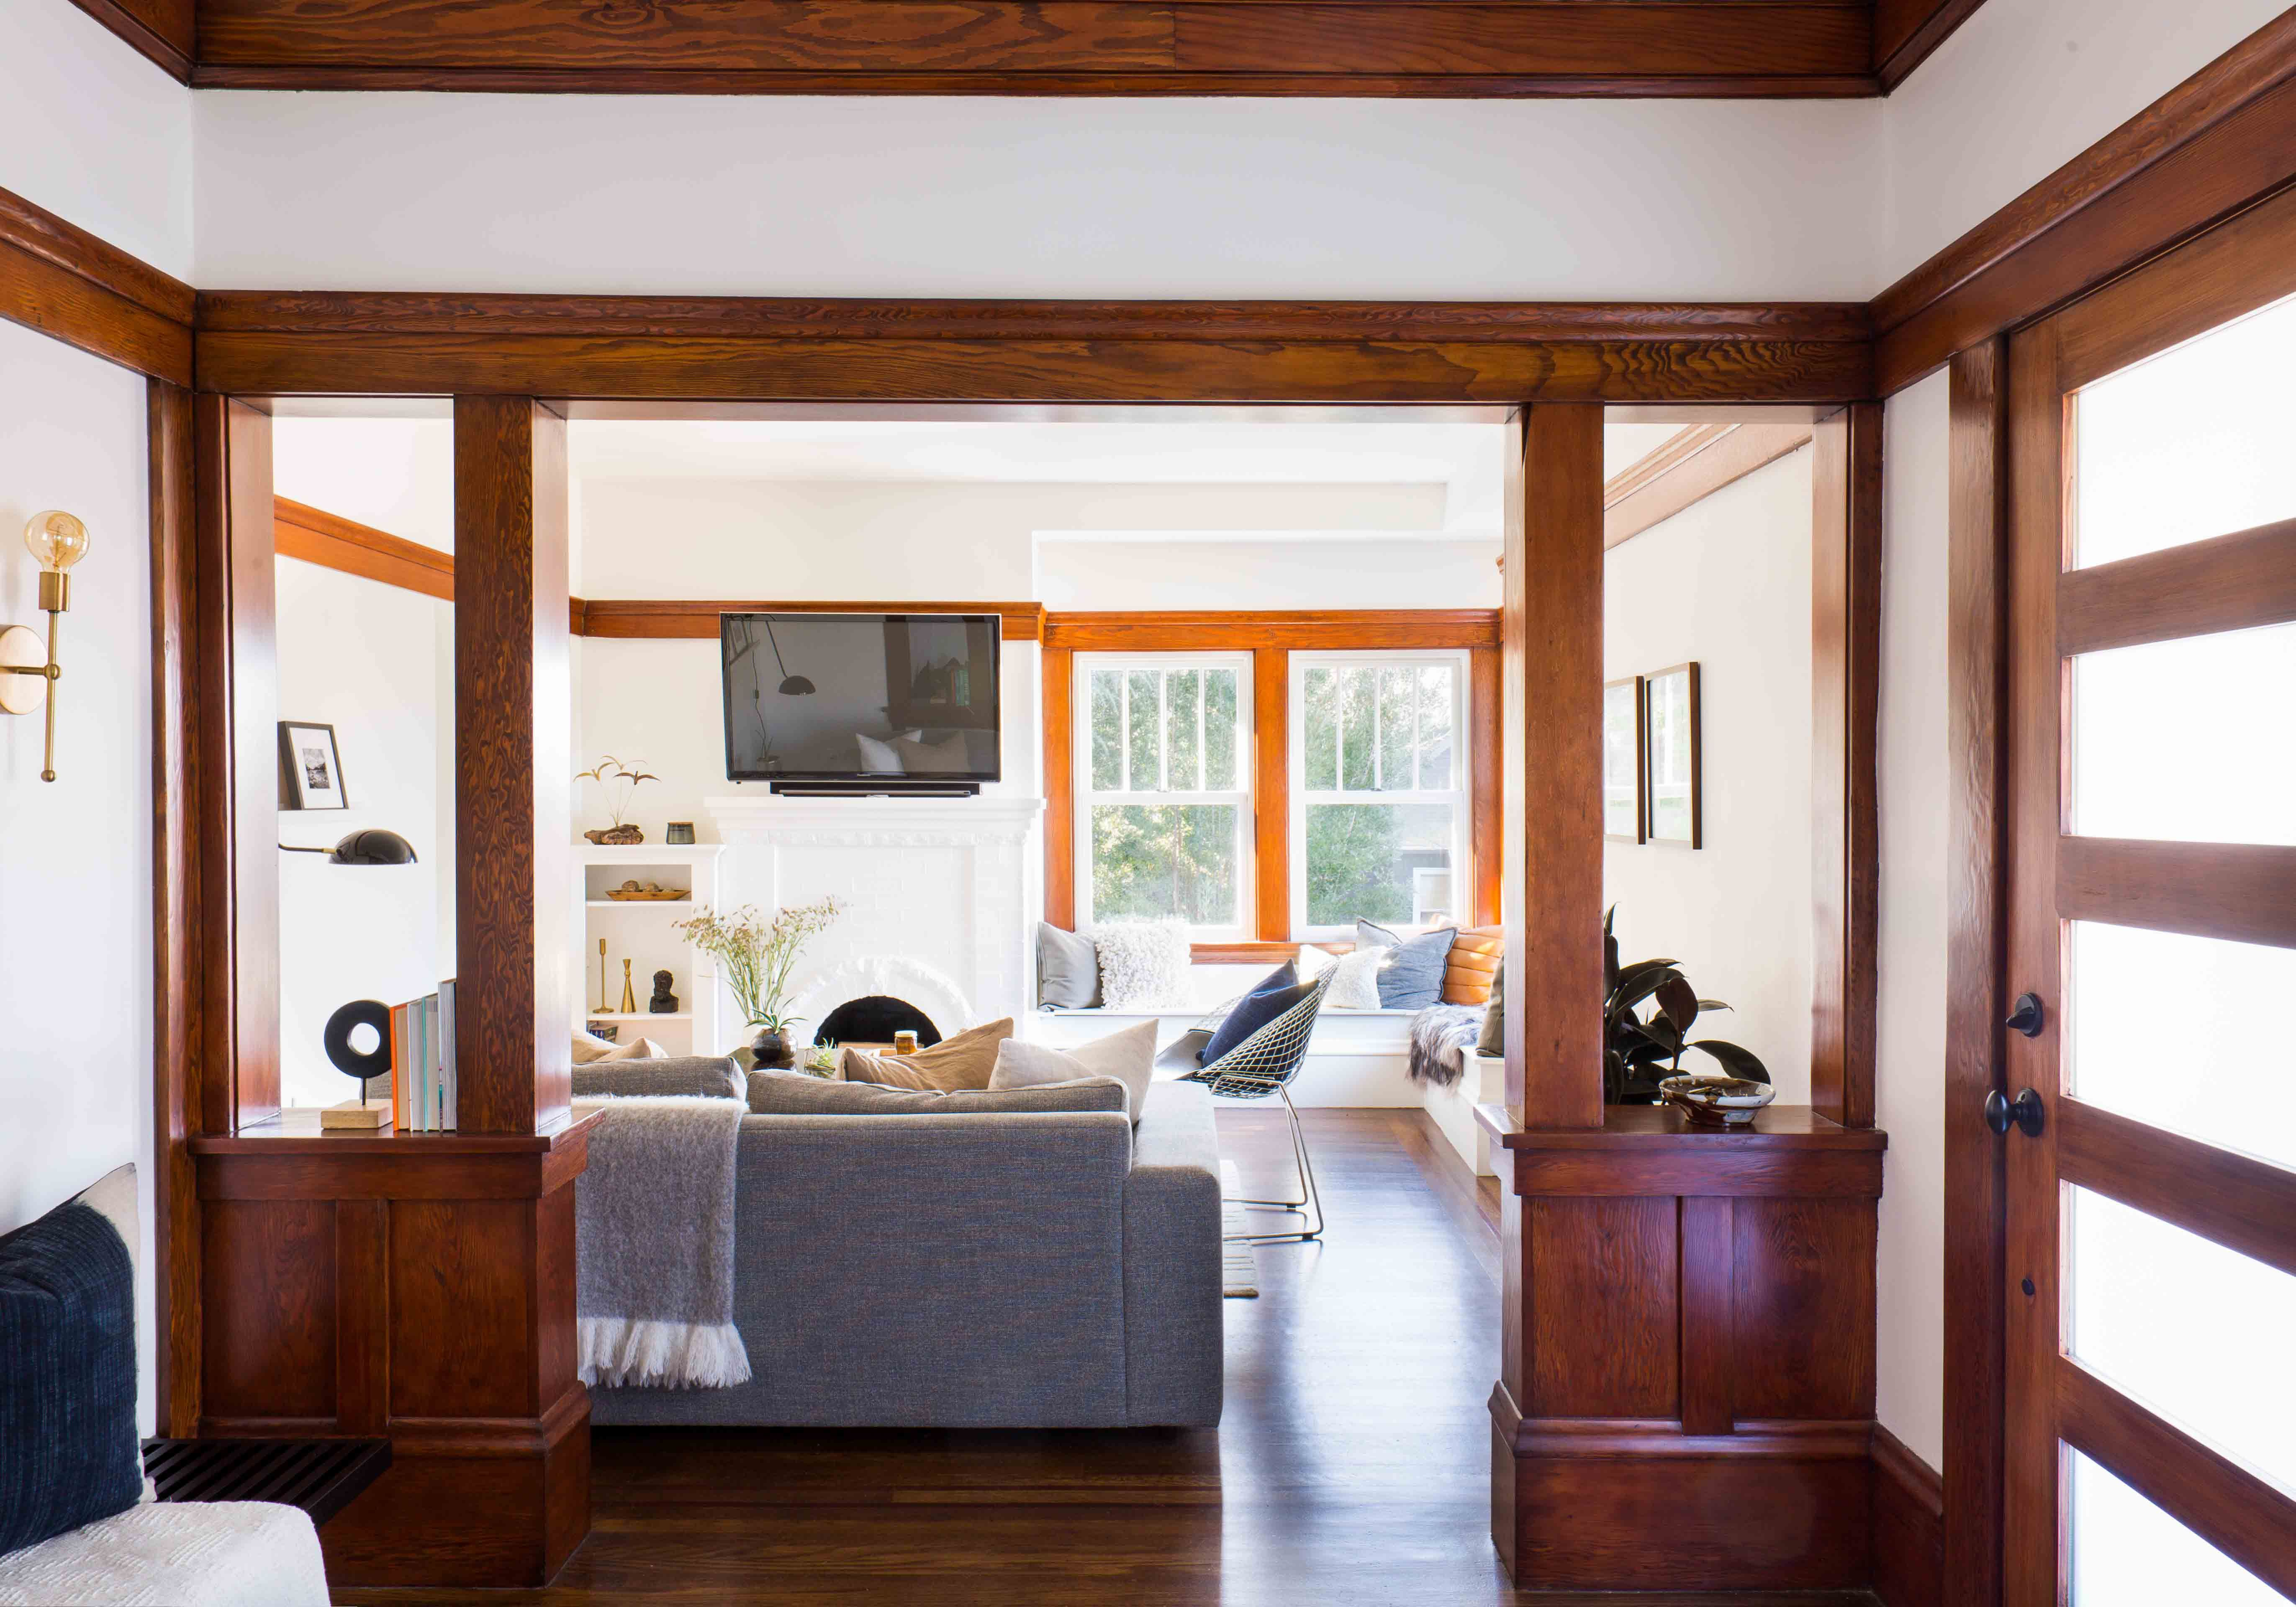 The Amazing Transformation Of A 1900 Craftsman Home Craftsman